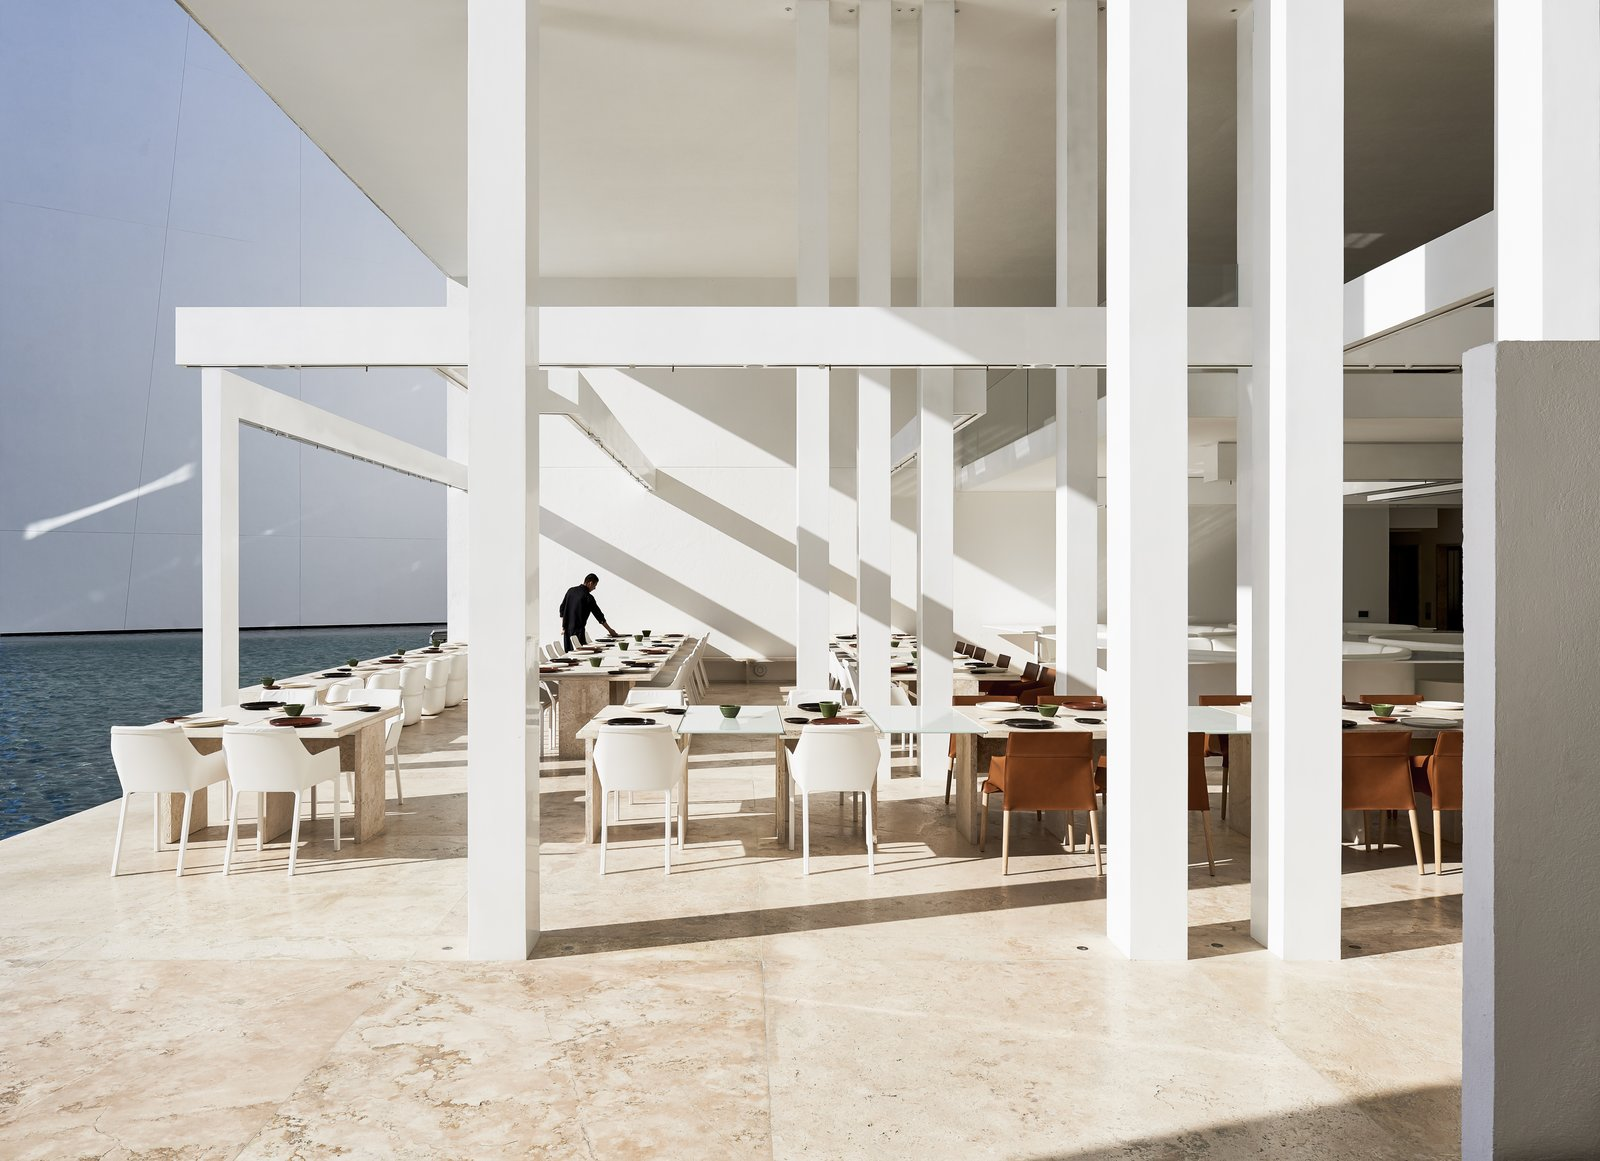 With white travertine floors and muted, modern furnishings by Poliform, this restaurant at the resort is all about the view of the ocean and the sensoral connectivity to it.